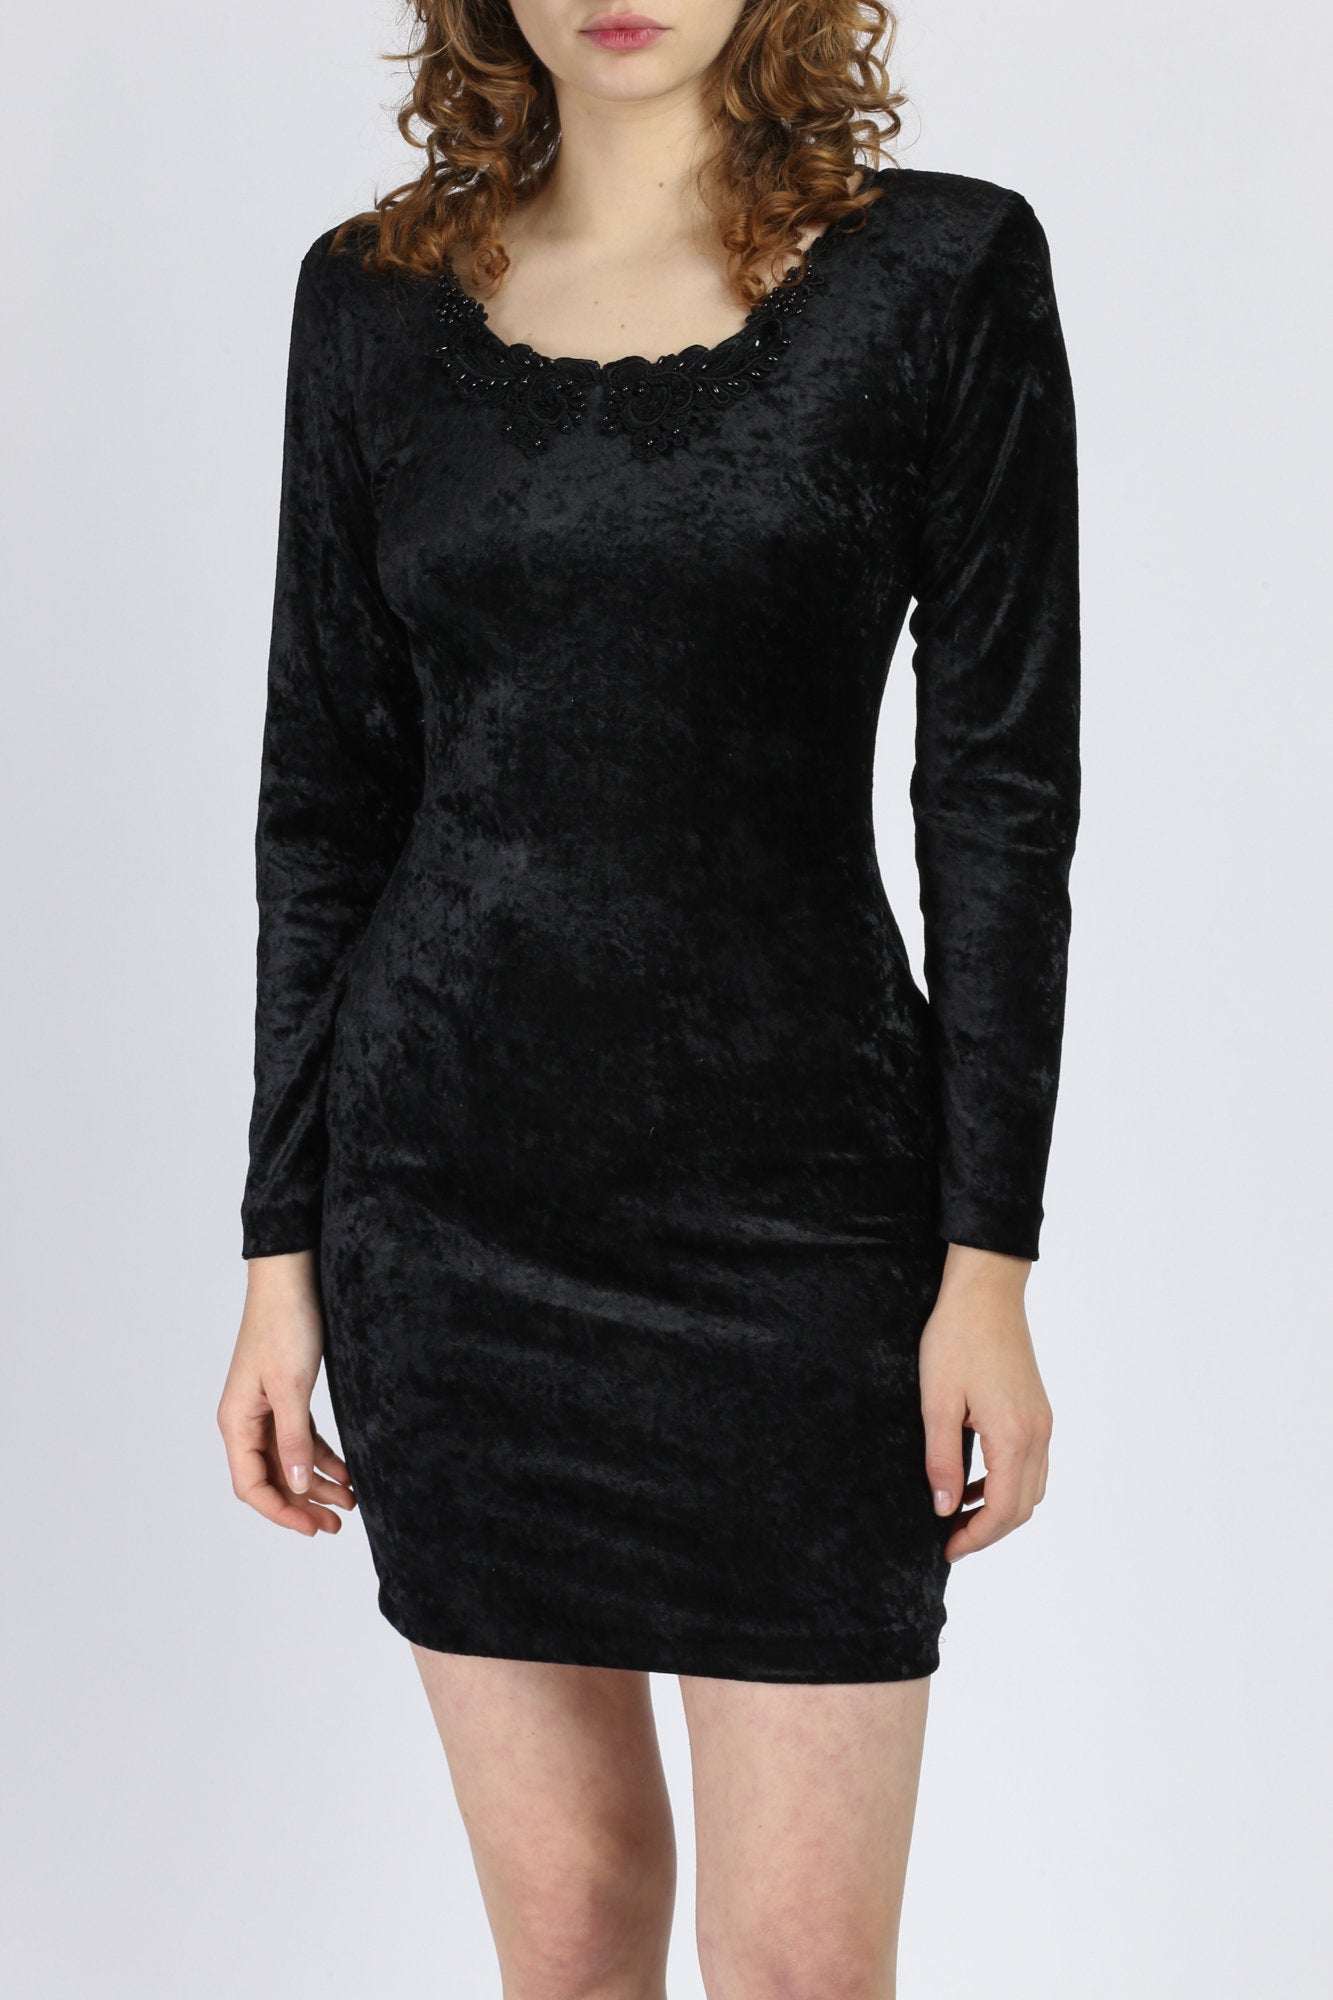 90s Black Velvet Bodycon Mini Dress - Small to Medium